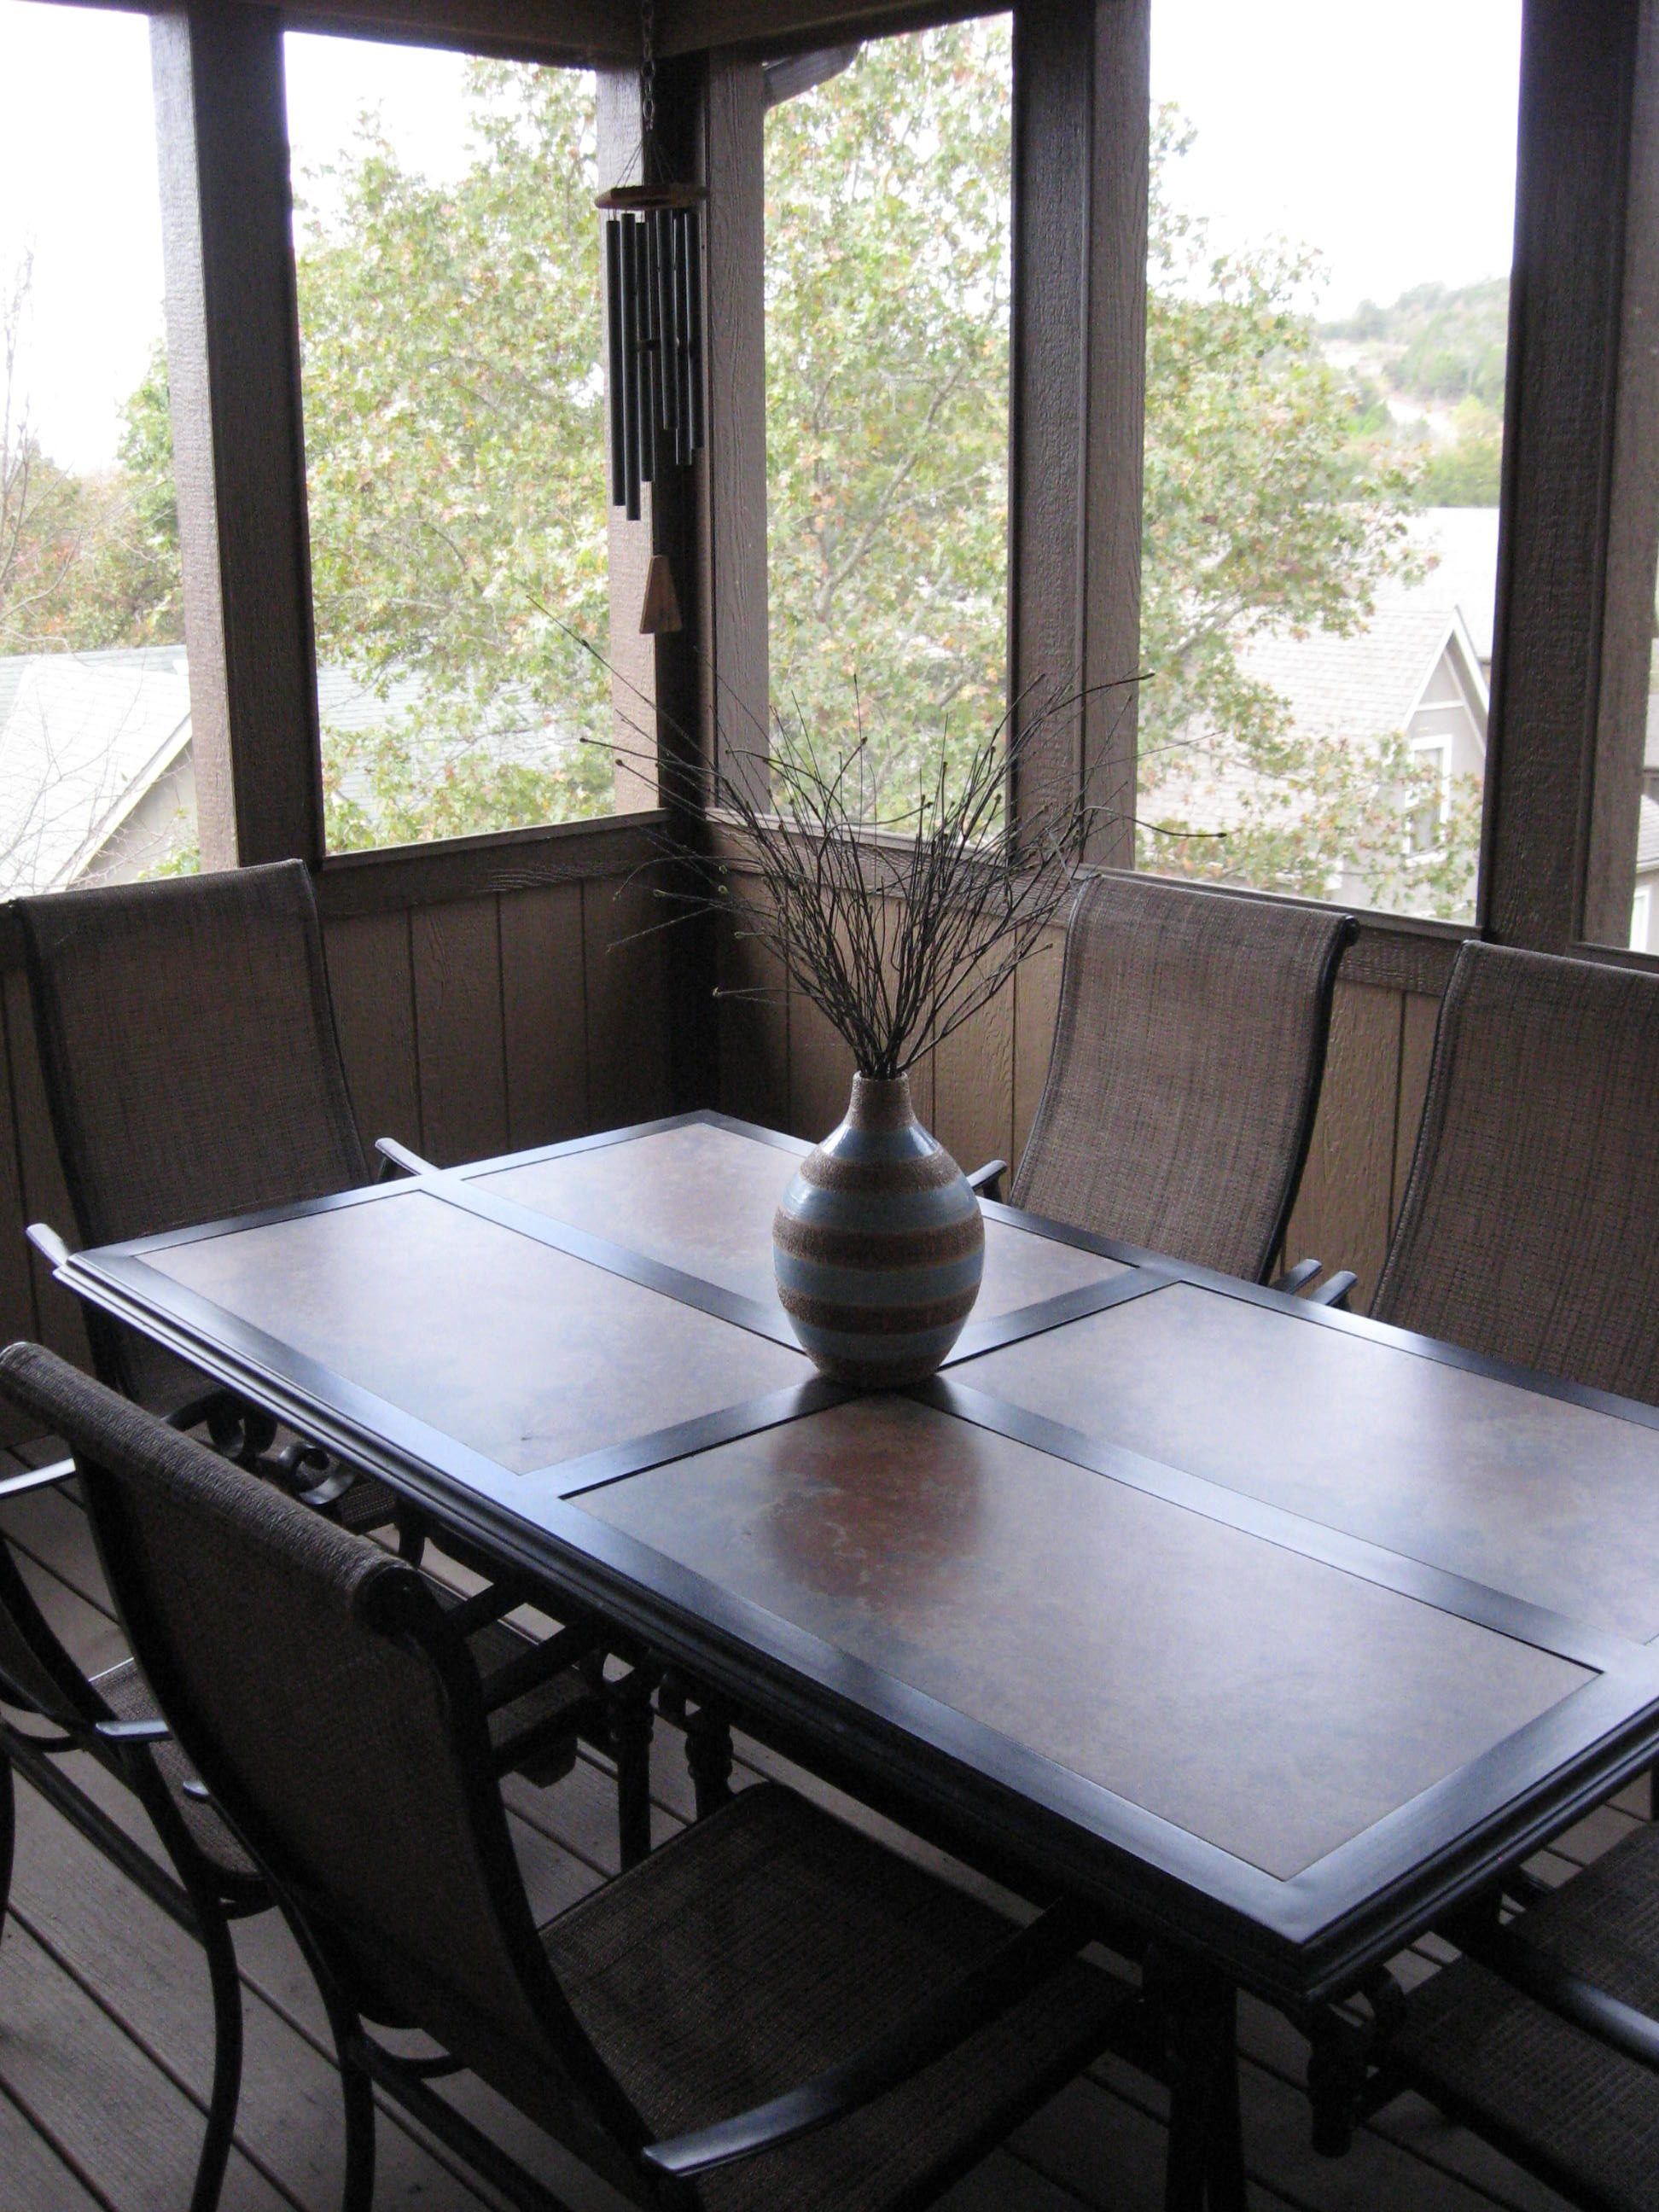 Branson Canyon Vacation Rentals GAL Screened porch